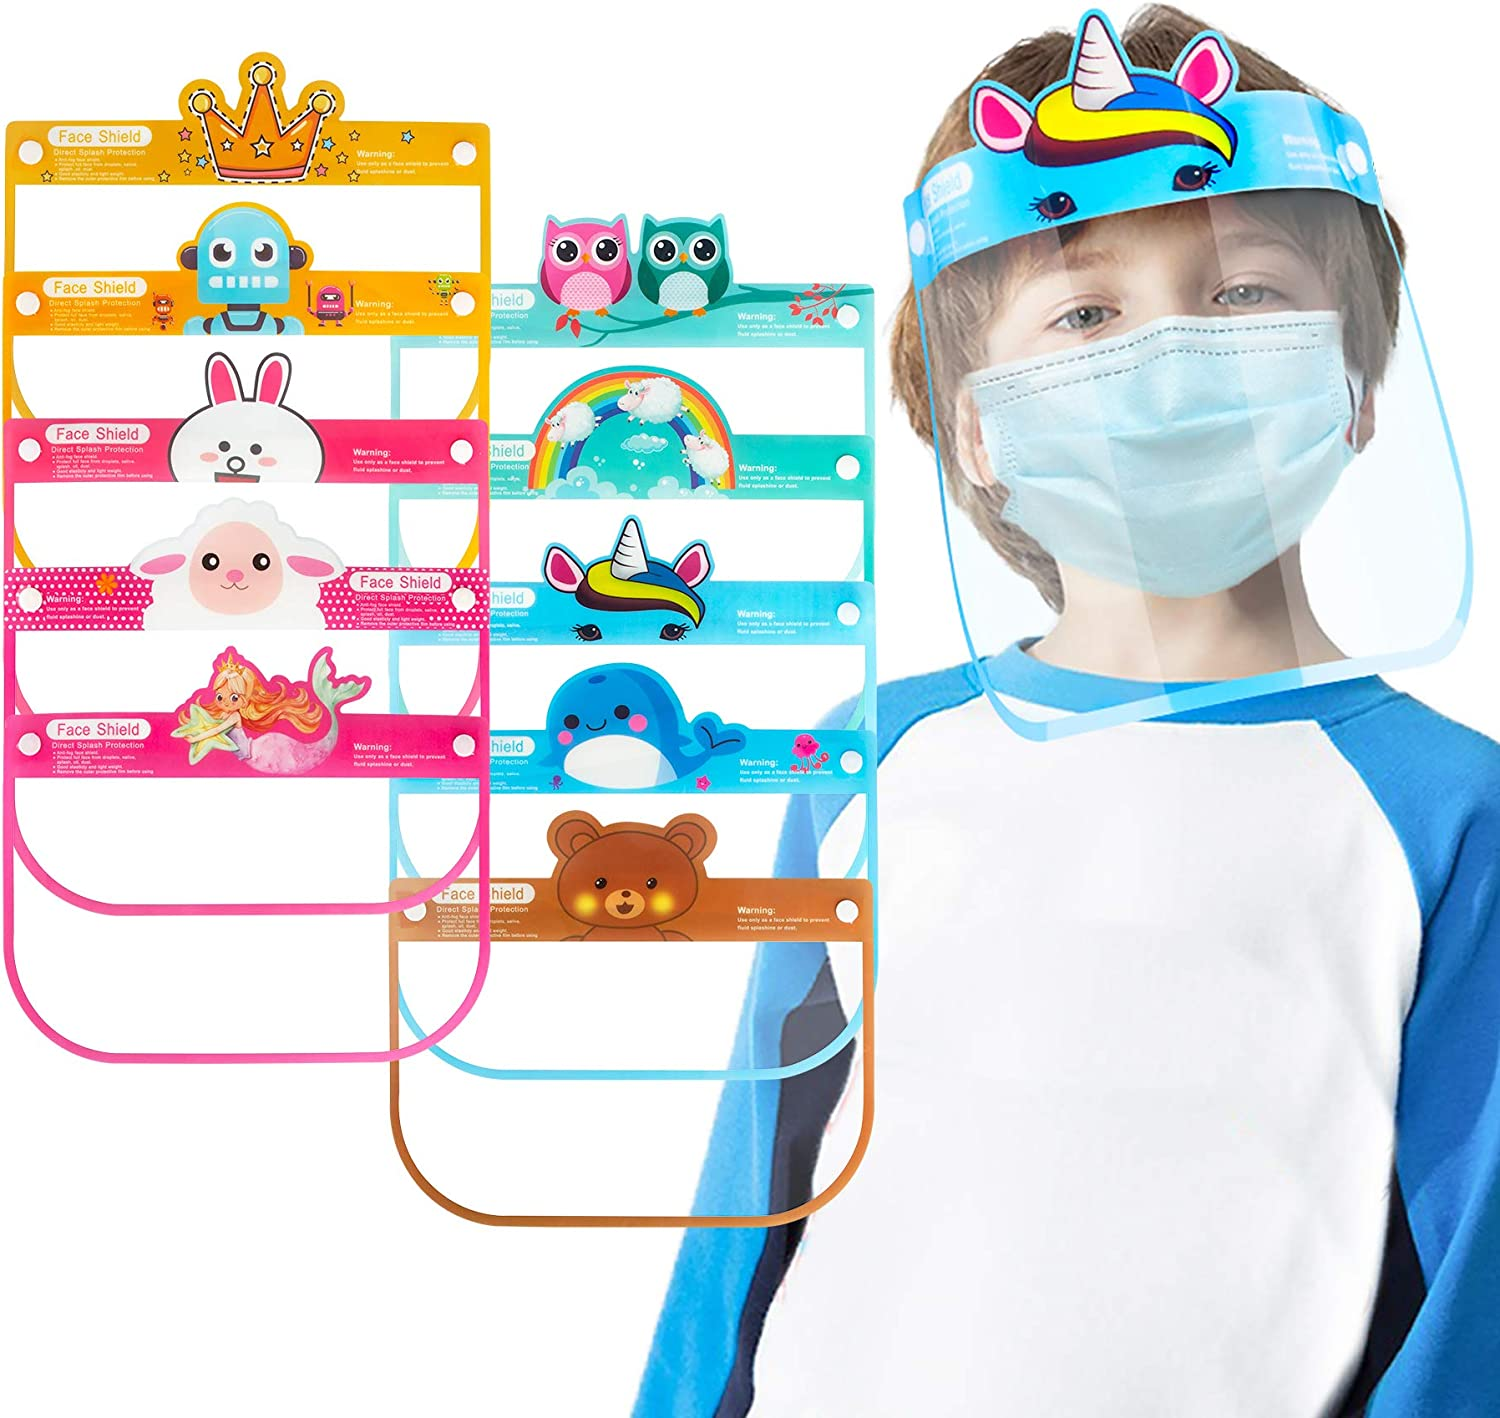 Details about  /3x Kids Safety Full Face Shield Protector Clear Face Cover Visor Hat Cap Stretch